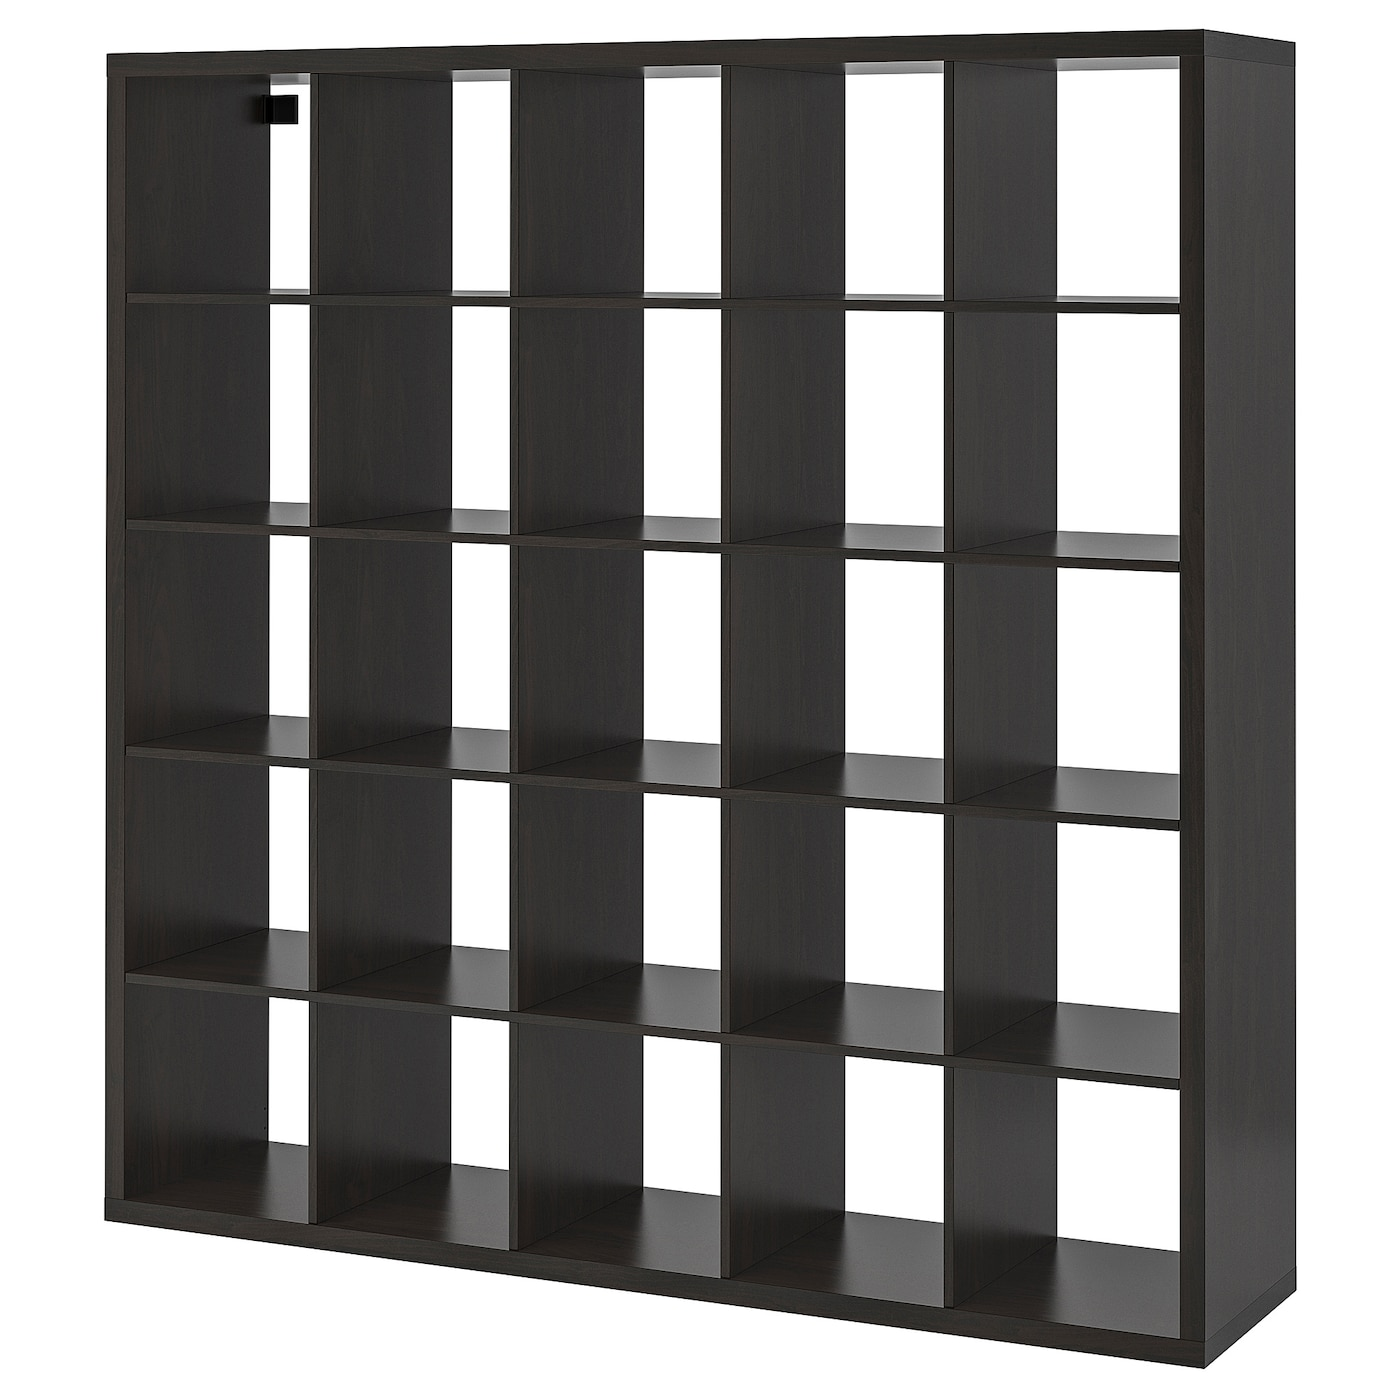 Ikea KALLAX Shelf unit, black-brown, 71 5/8x71 5/8